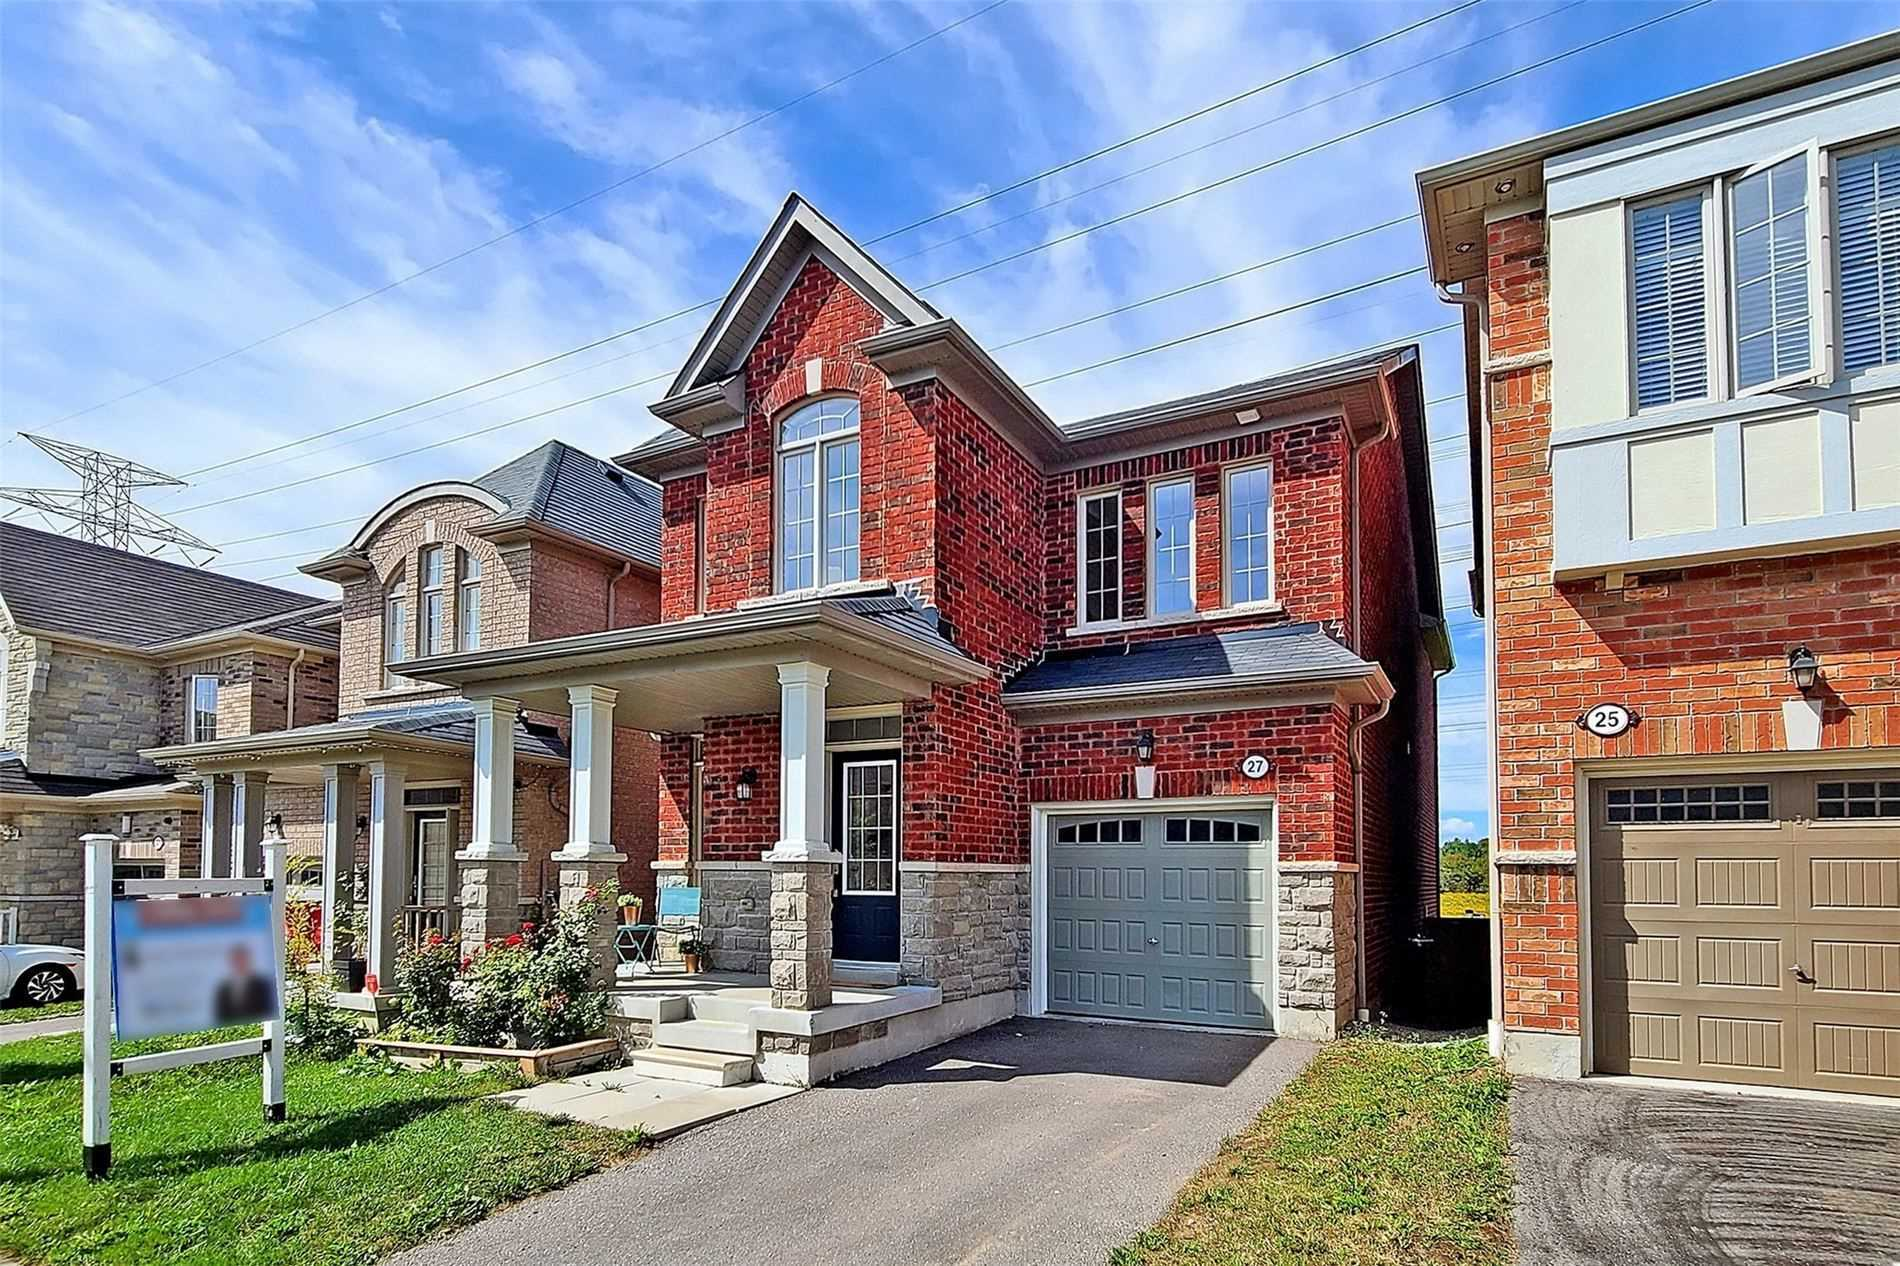 Detached house For Sale In AJAX - 27 Stockell Cres, AJAX, Ontario, Canada L1T0M5 , 4 Bedrooms Bedrooms, ,4 BathroomsBathrooms,Detached,For Sale,Stockell